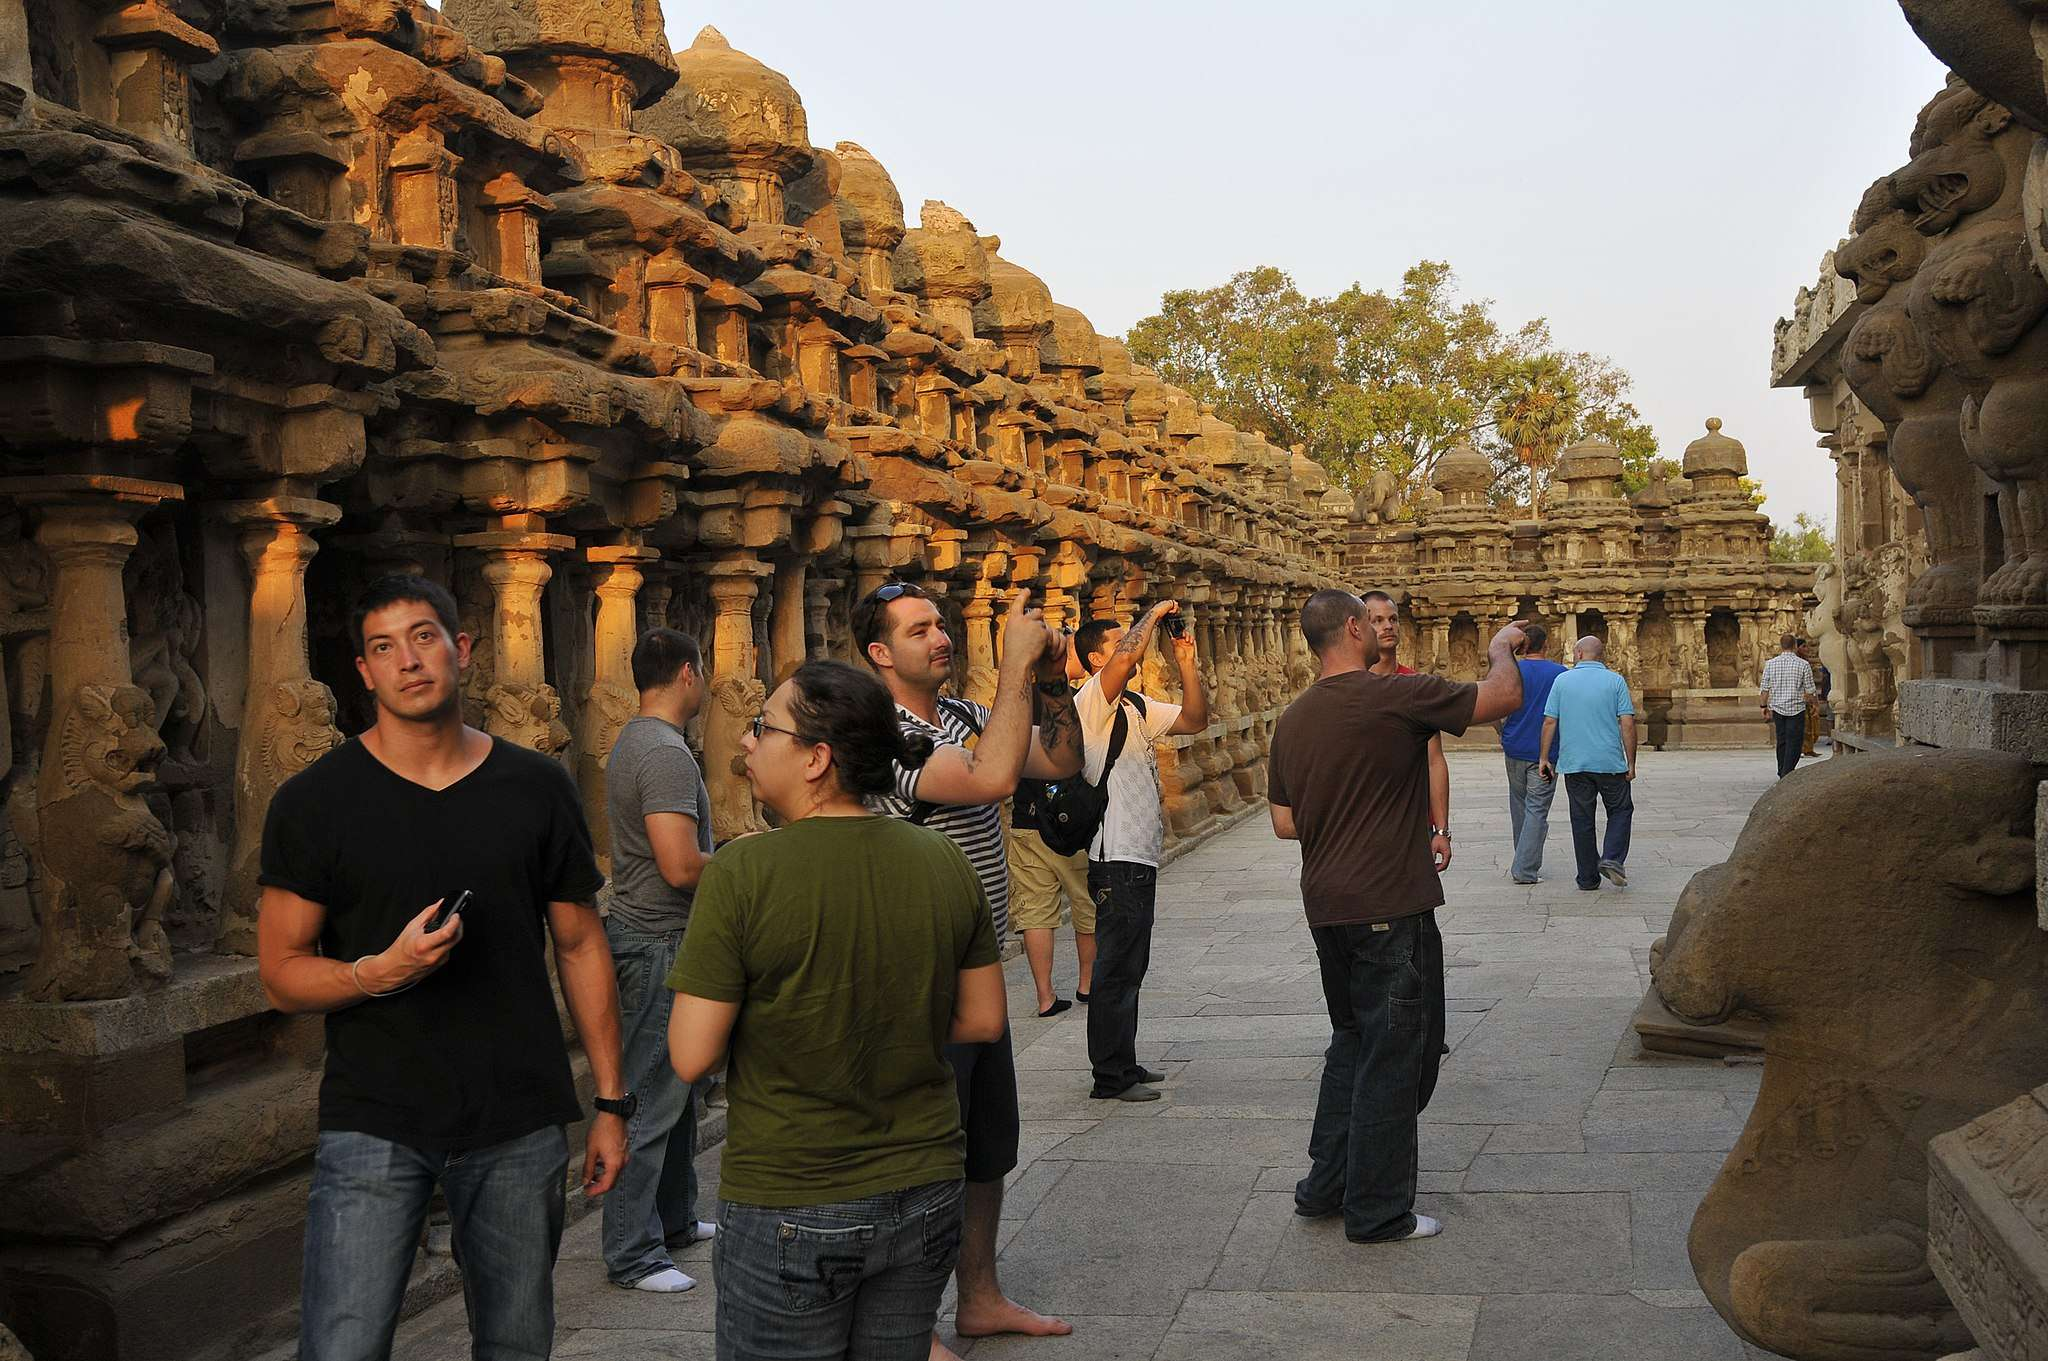 Be respectful of ancient sites and temples! Dress and act appropriately.